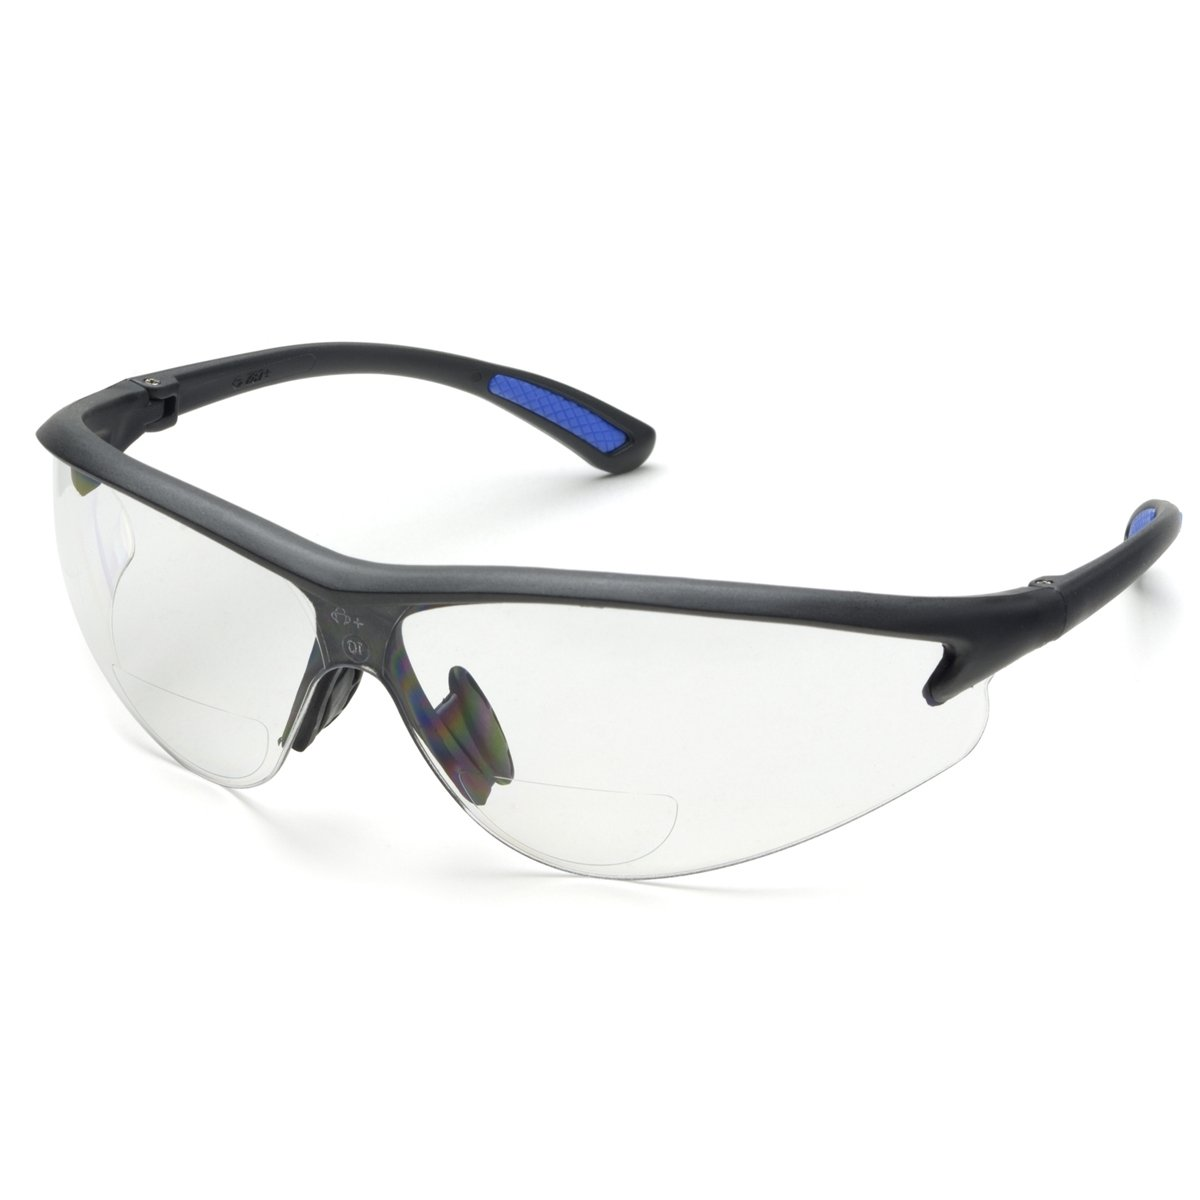 Elvex RX-300-1.0 Safety Reading Glass, PC Lens, +1.0 Diopter, Clear Lens